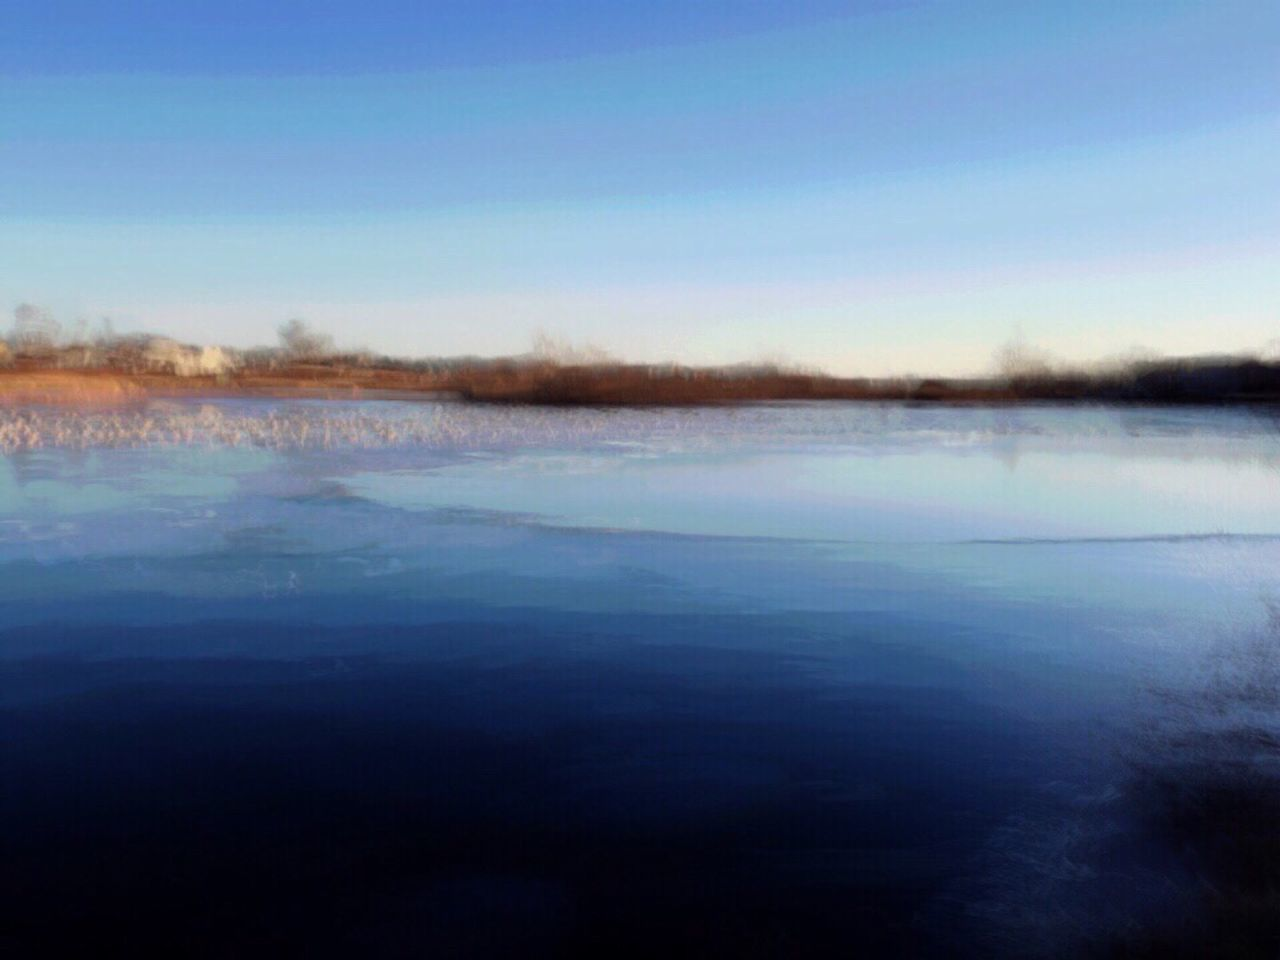 Water Blue Nature Sky Scenics No People Beauty In Nature Tranquil Scene Tranquility Outdoors Landscape Day Geese Geese Photography Geese Gathering Abstract Abstract Photography The Week On Eyem Lanscape Landscape_Collection Landscape_photography Oswego, IL The Great Outdoors - 2017 EyeEm Awards